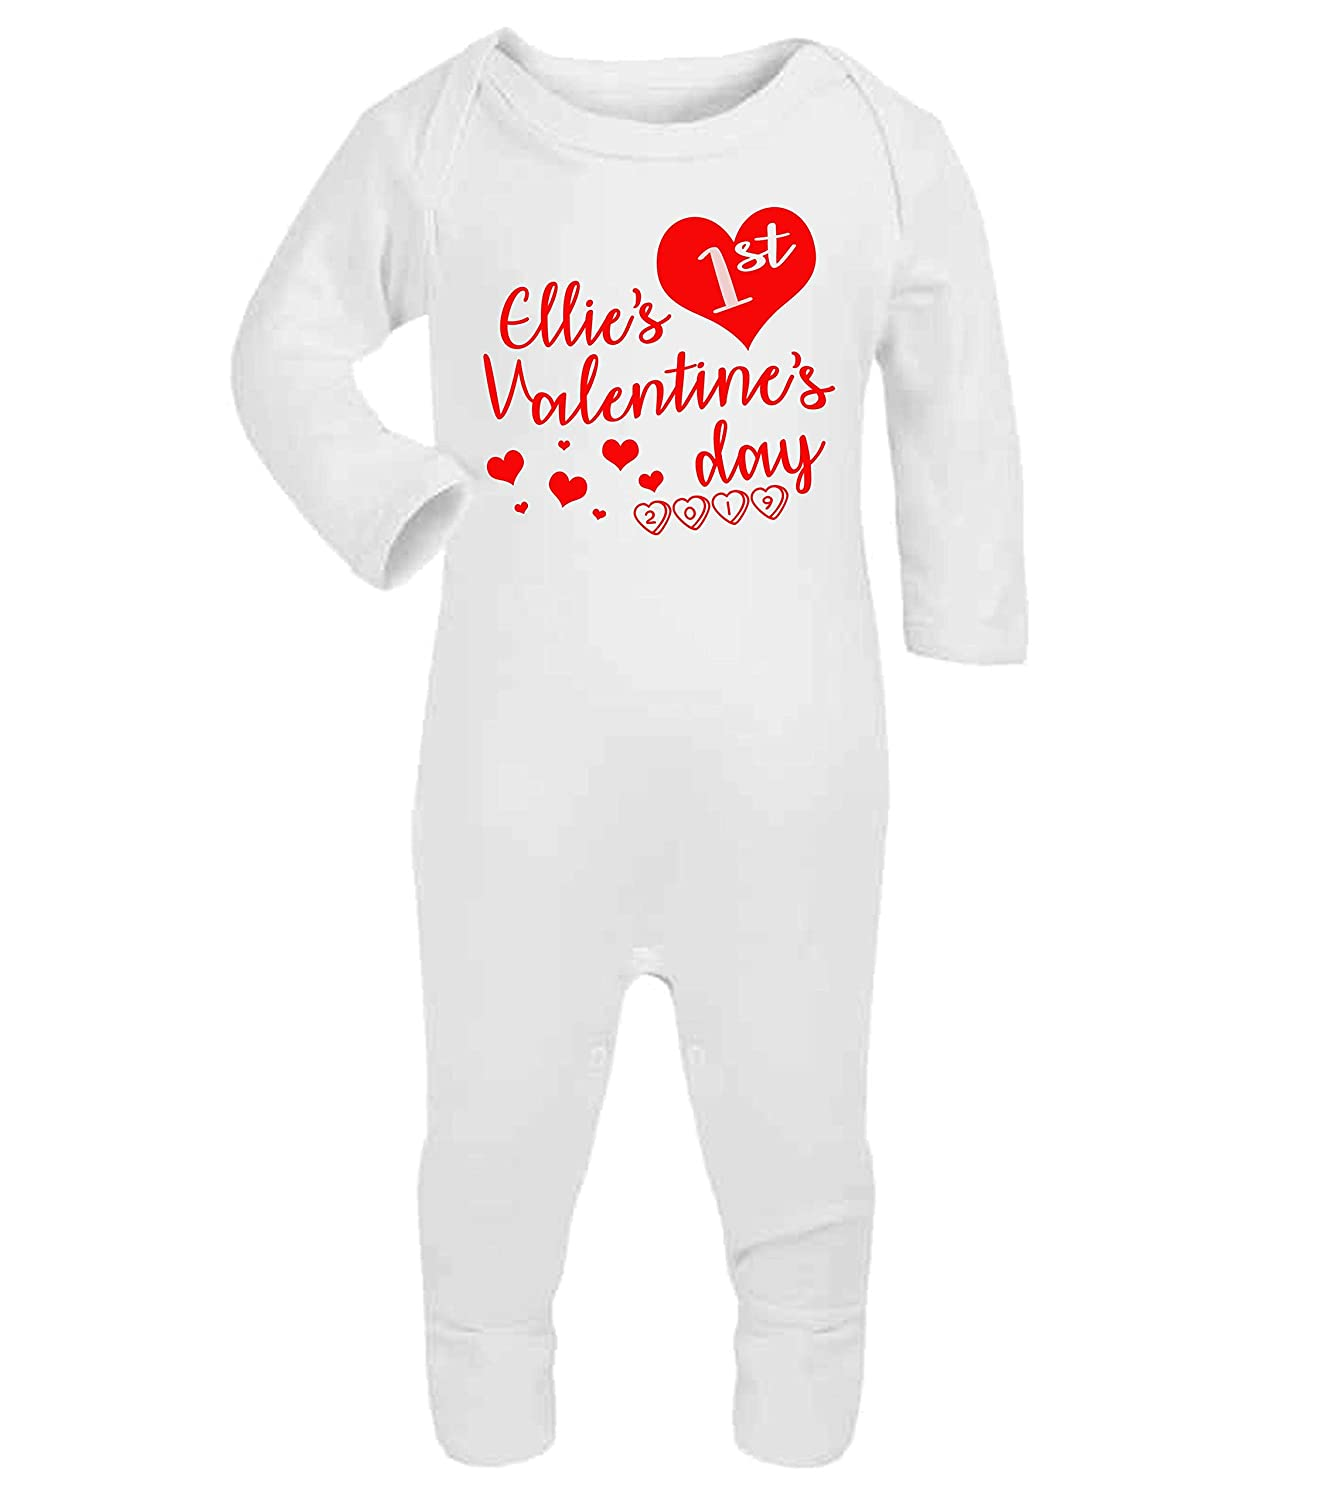 f7a93bbb6 Personalised My First Valentine s Day Baby Romper Baby Gifts ...